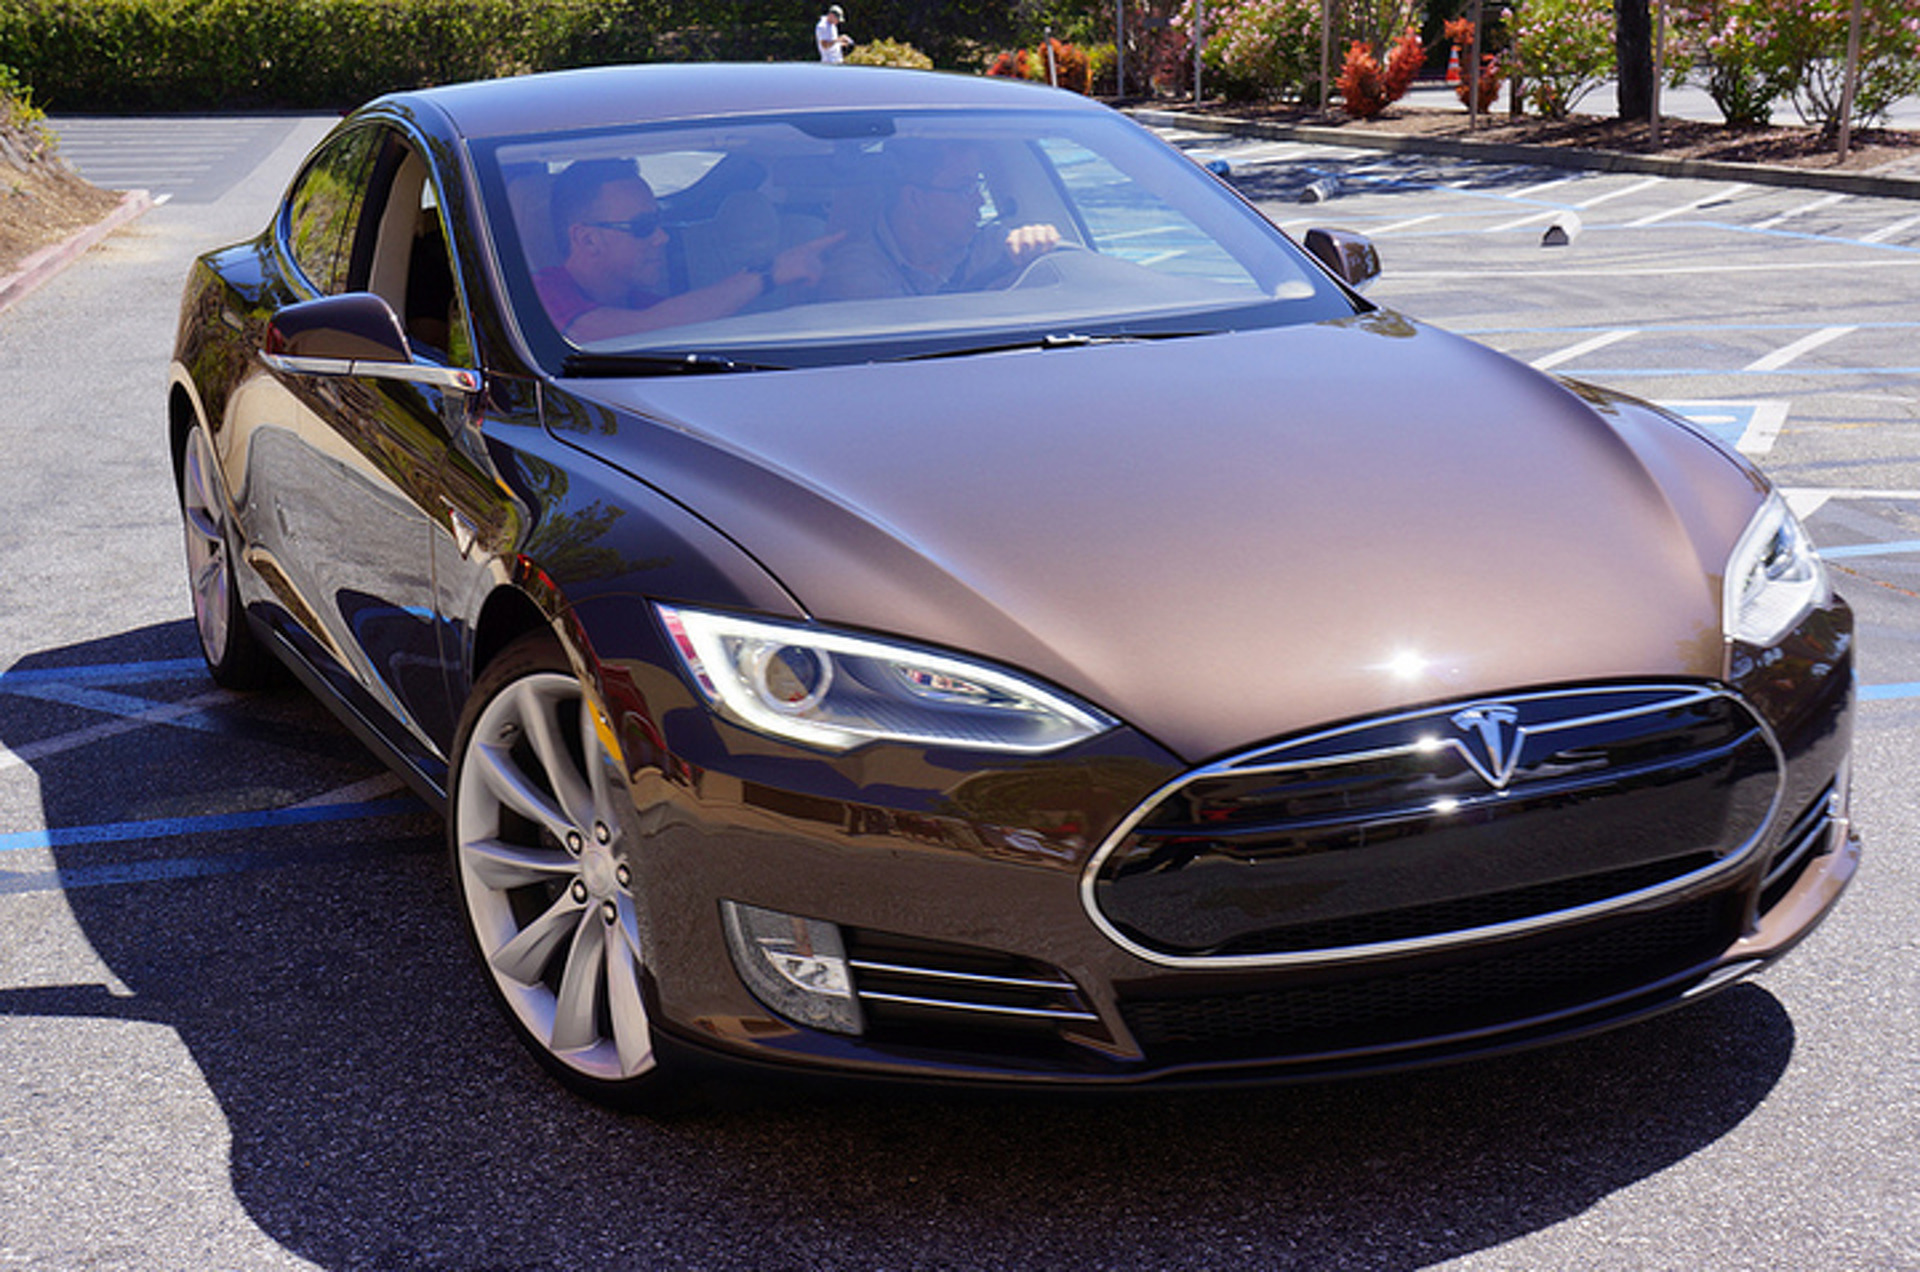 Tesla Offers Infinite Warranty, But With a Hitch